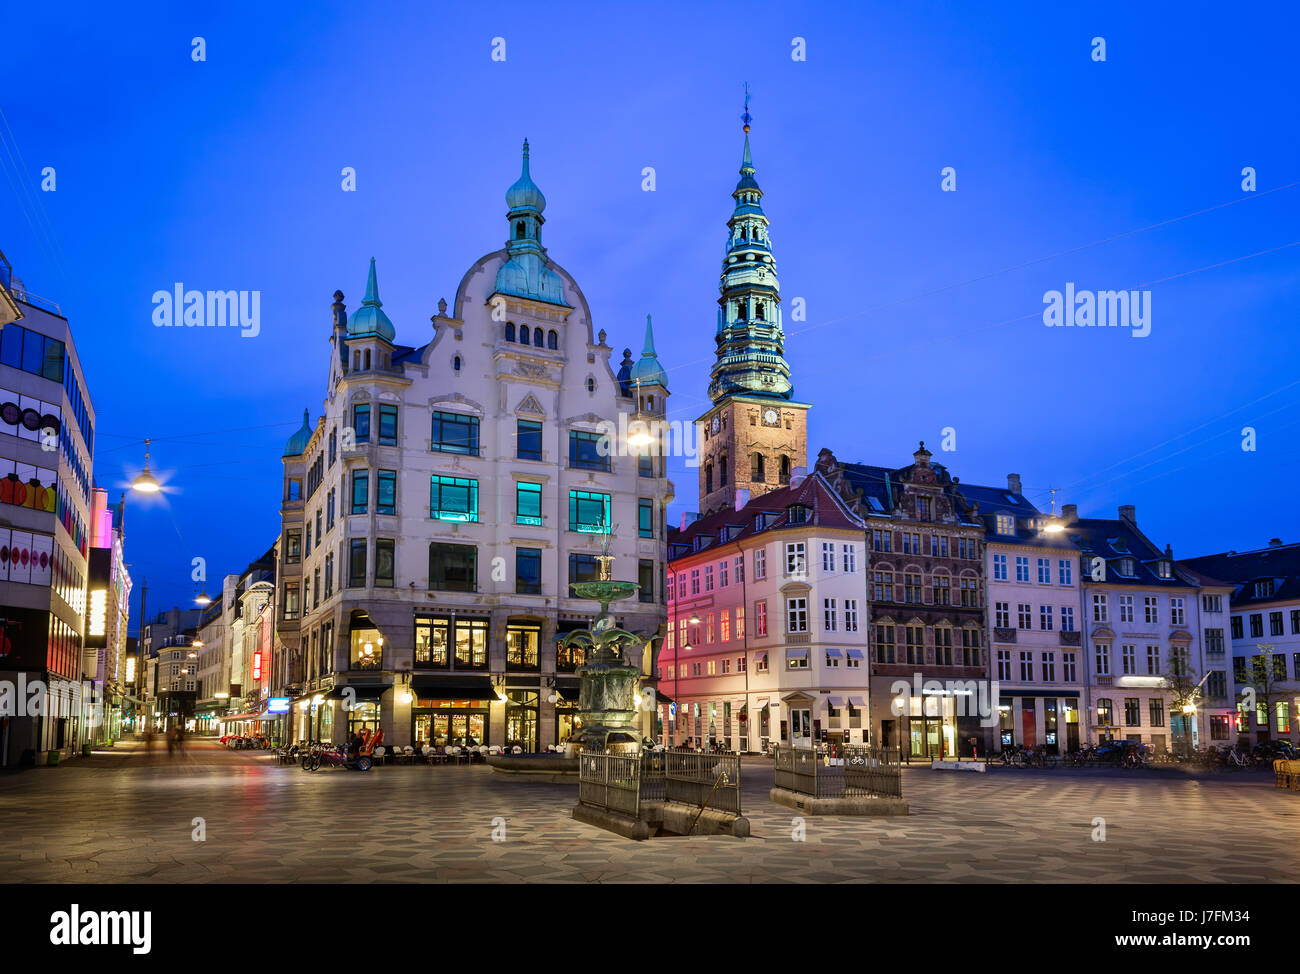 Amagertorv Square and Stork Fountain in the Old Town of Copenhagen, Denmark - Stock Image